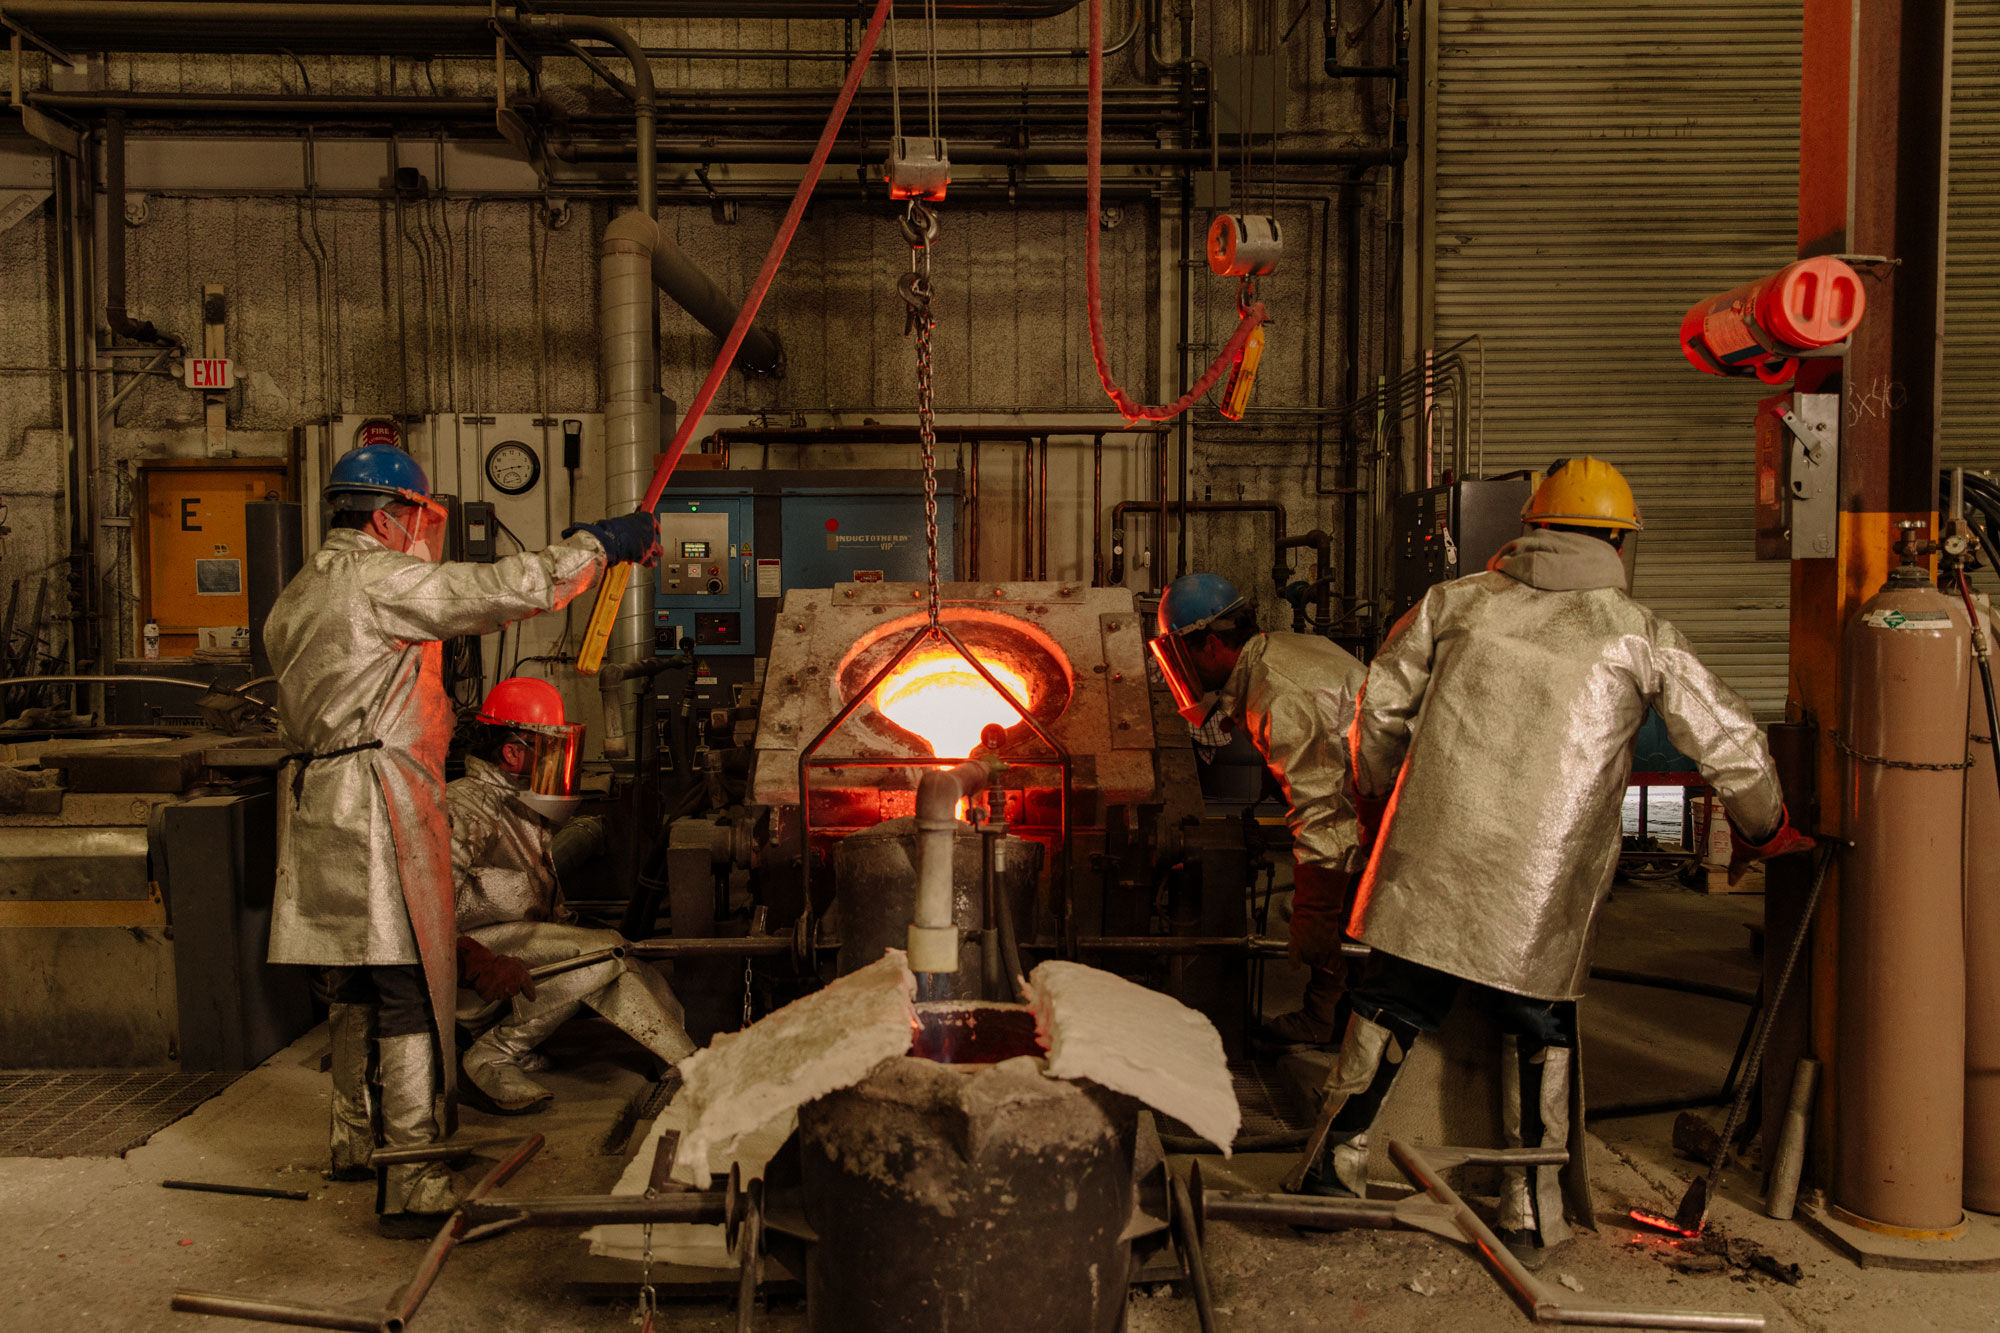 PTX foundrymen pouring molten metal into a crucible. Photo by Ricky Rhodes for Artsy.